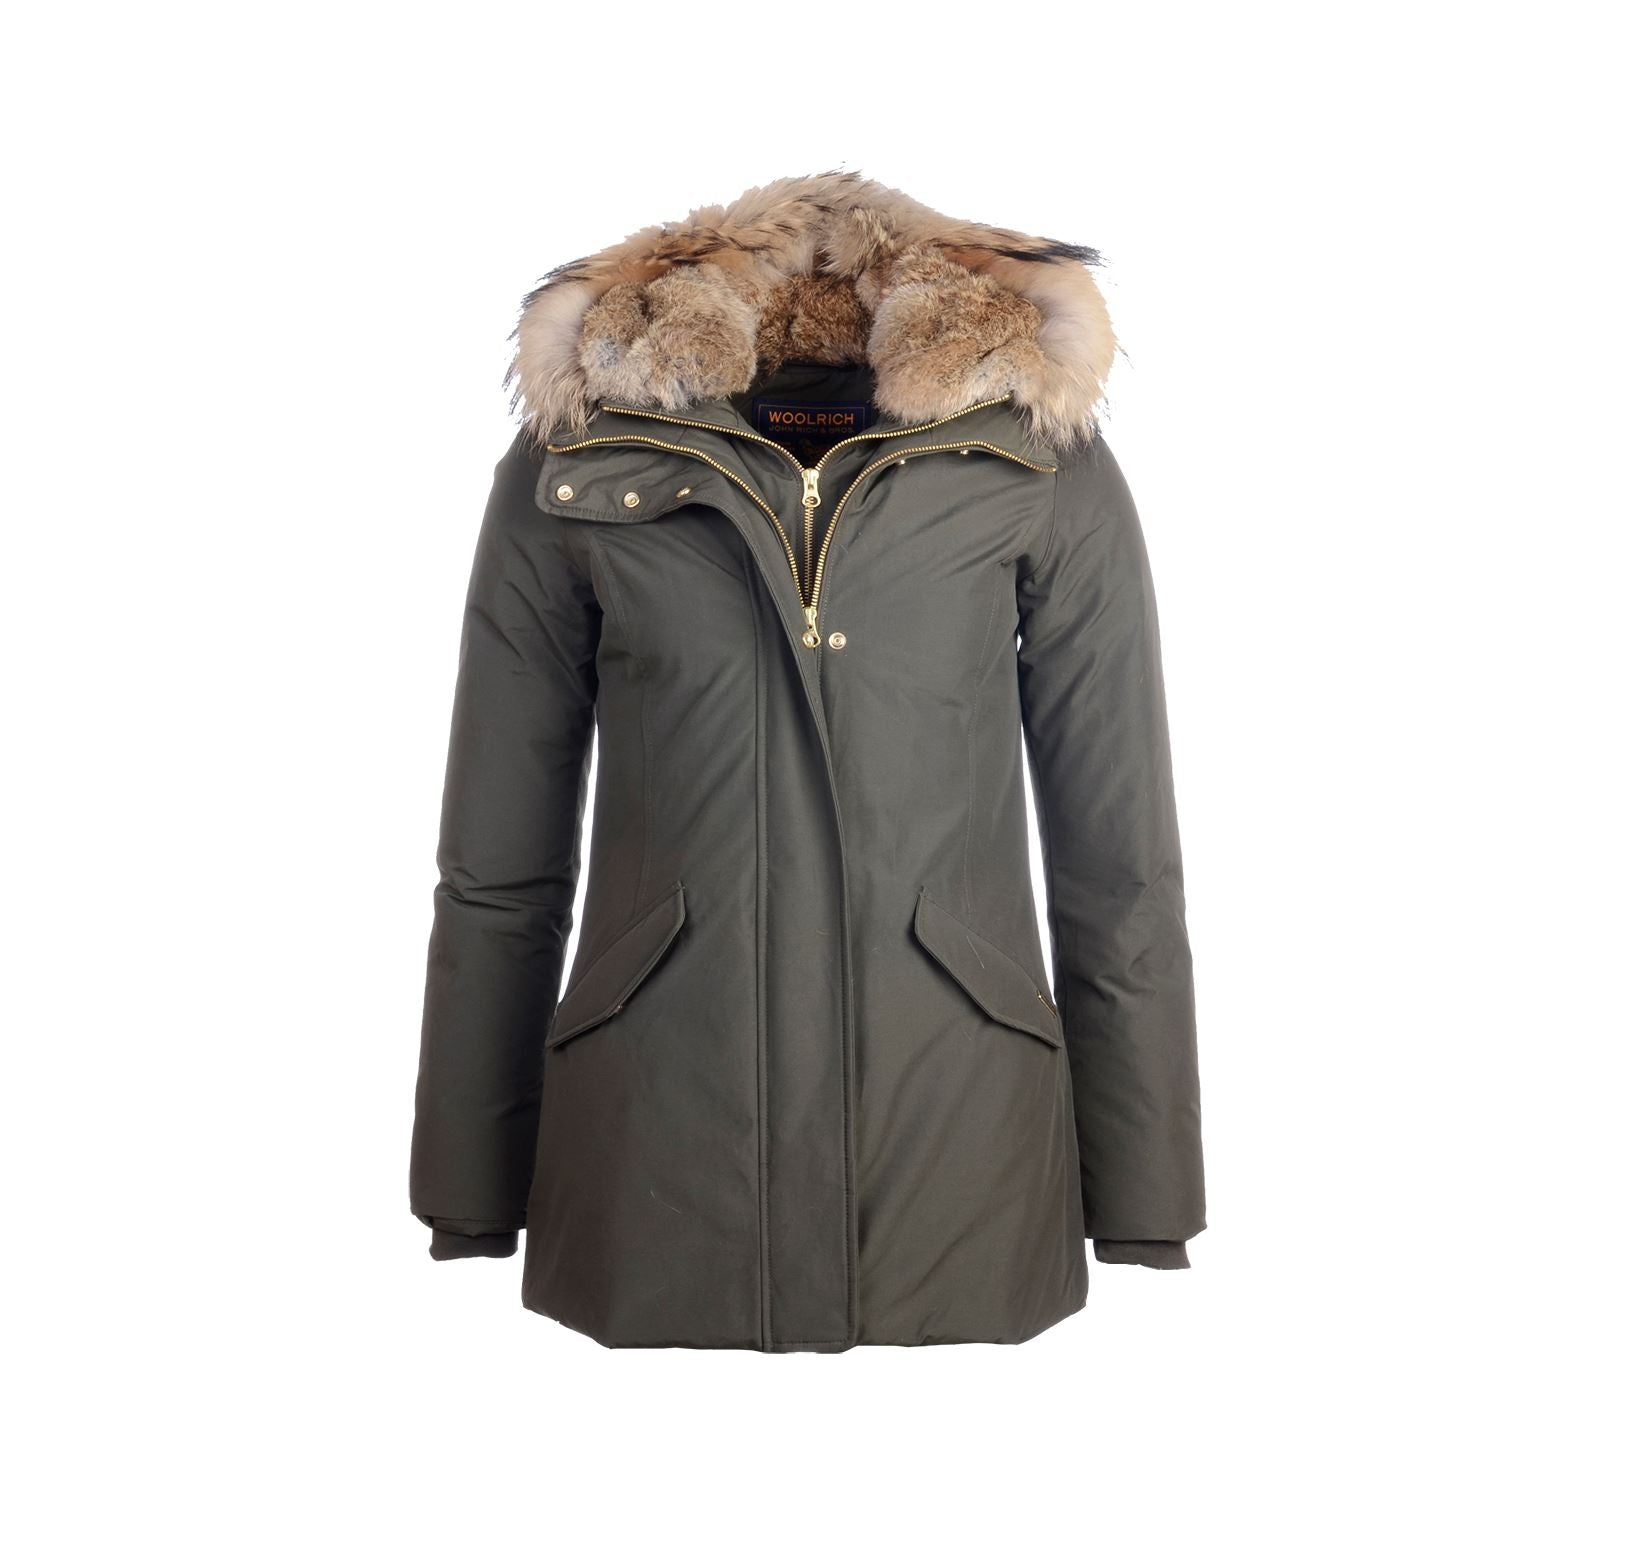 WOOLRICH 'Valentine' parka-Jacket-Classic fashion CF13-XS-Olive-Classic fashion CF13